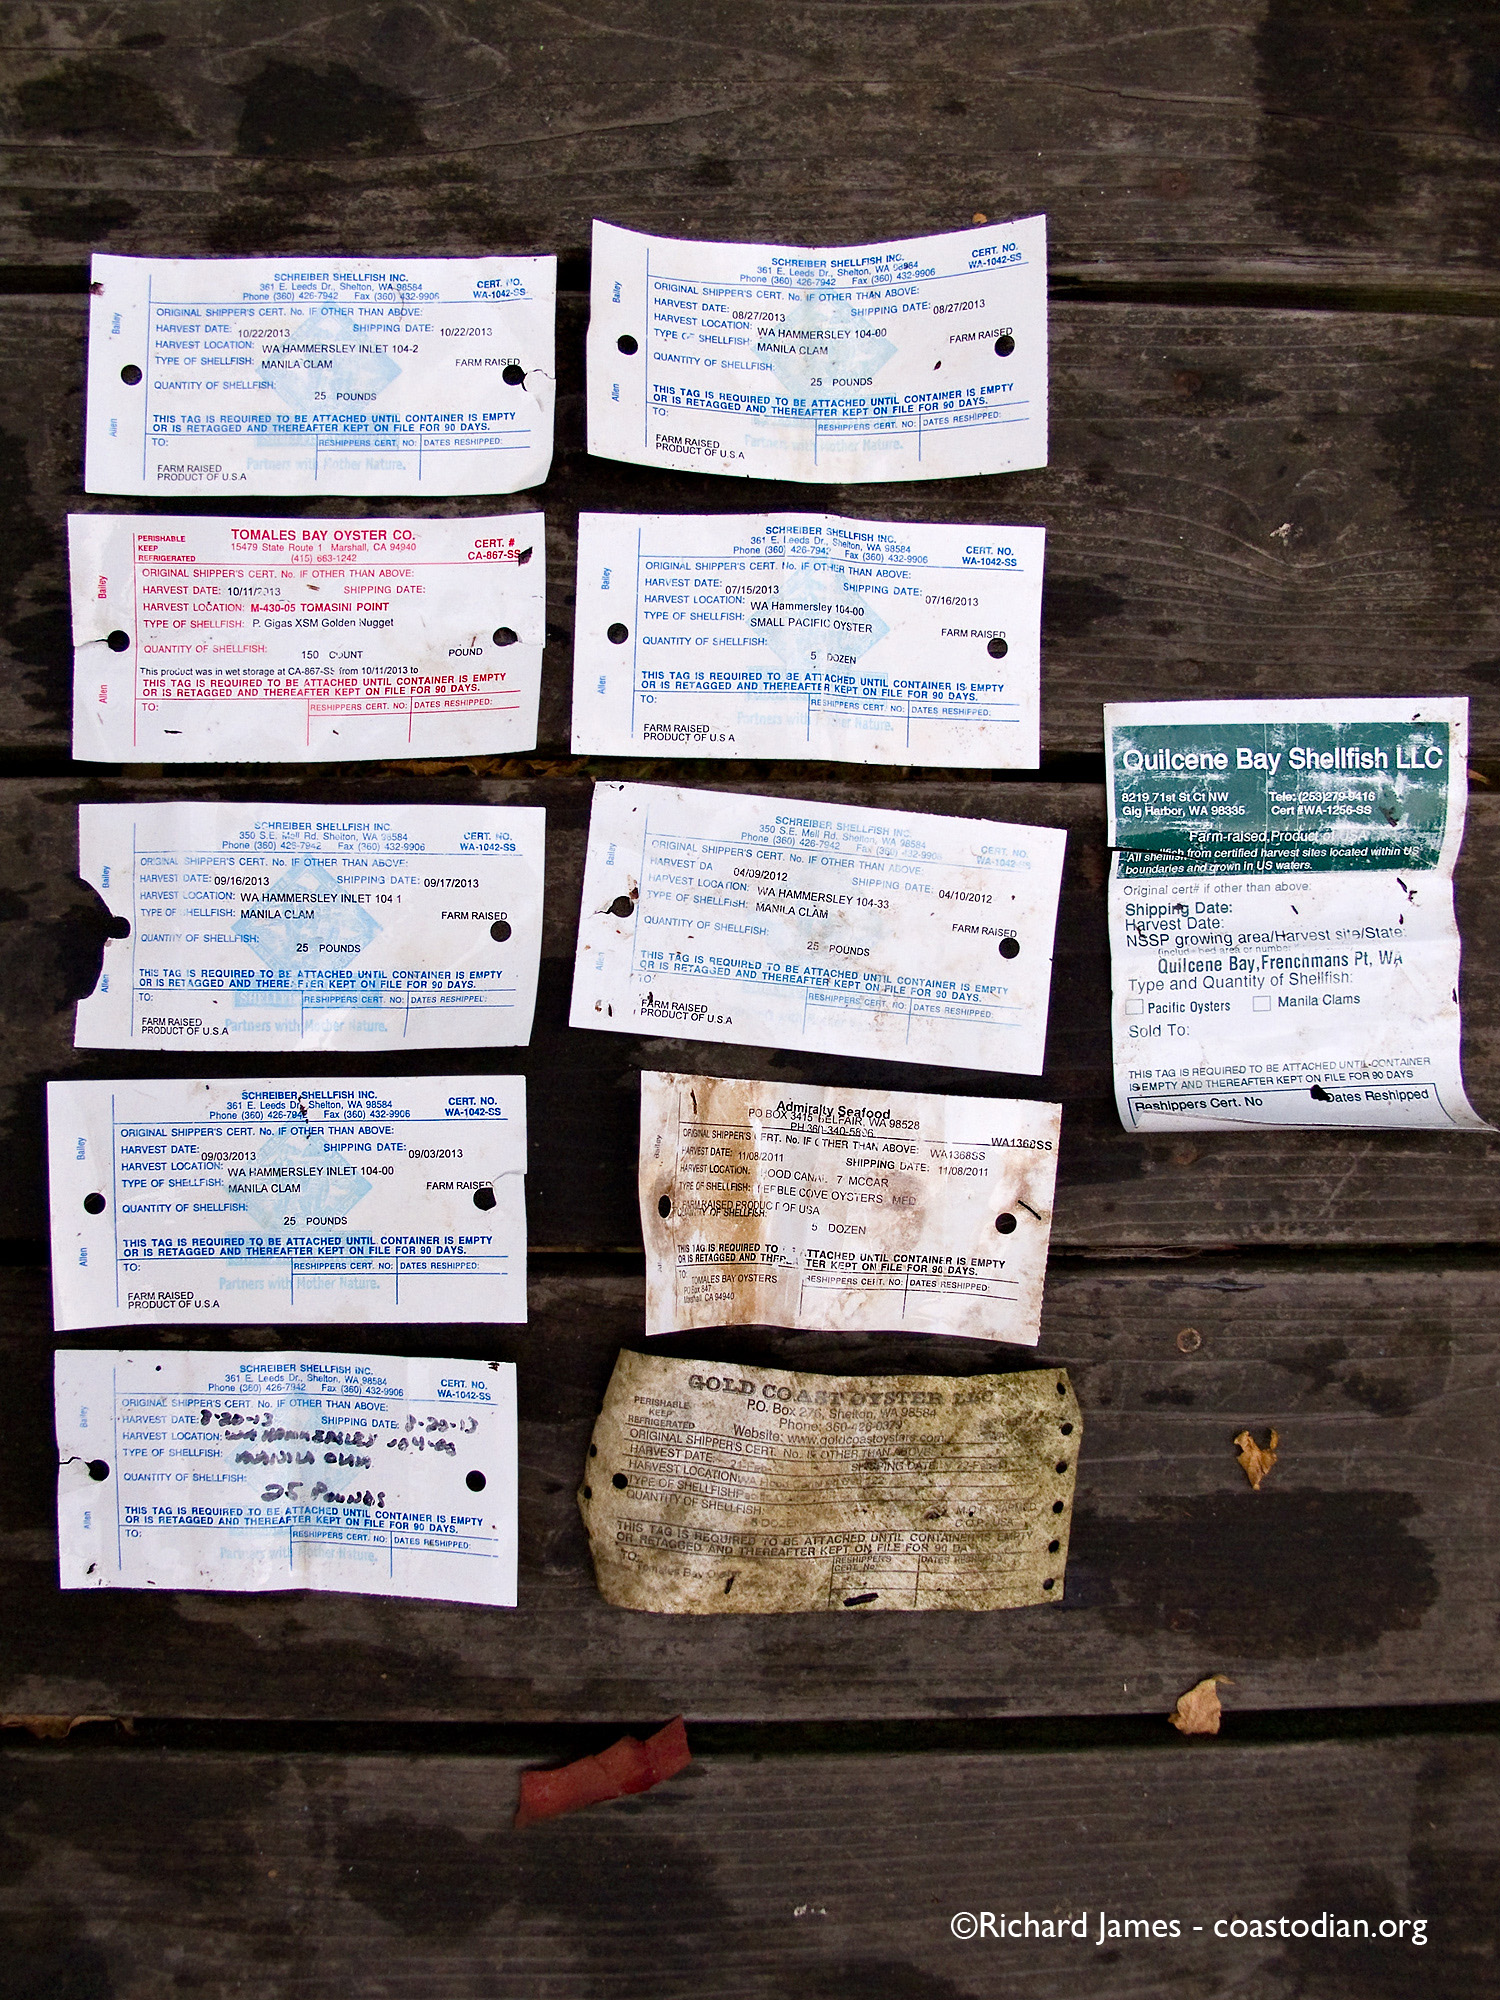 Tags from bags of shellfish, shipped from Washington State to Marin.  All found on 17 November, 2013 along the shore near Tomales Bay Oyster Company. Check out the dates on those tags... Click image for a larger version. Know your farmer, call them up!